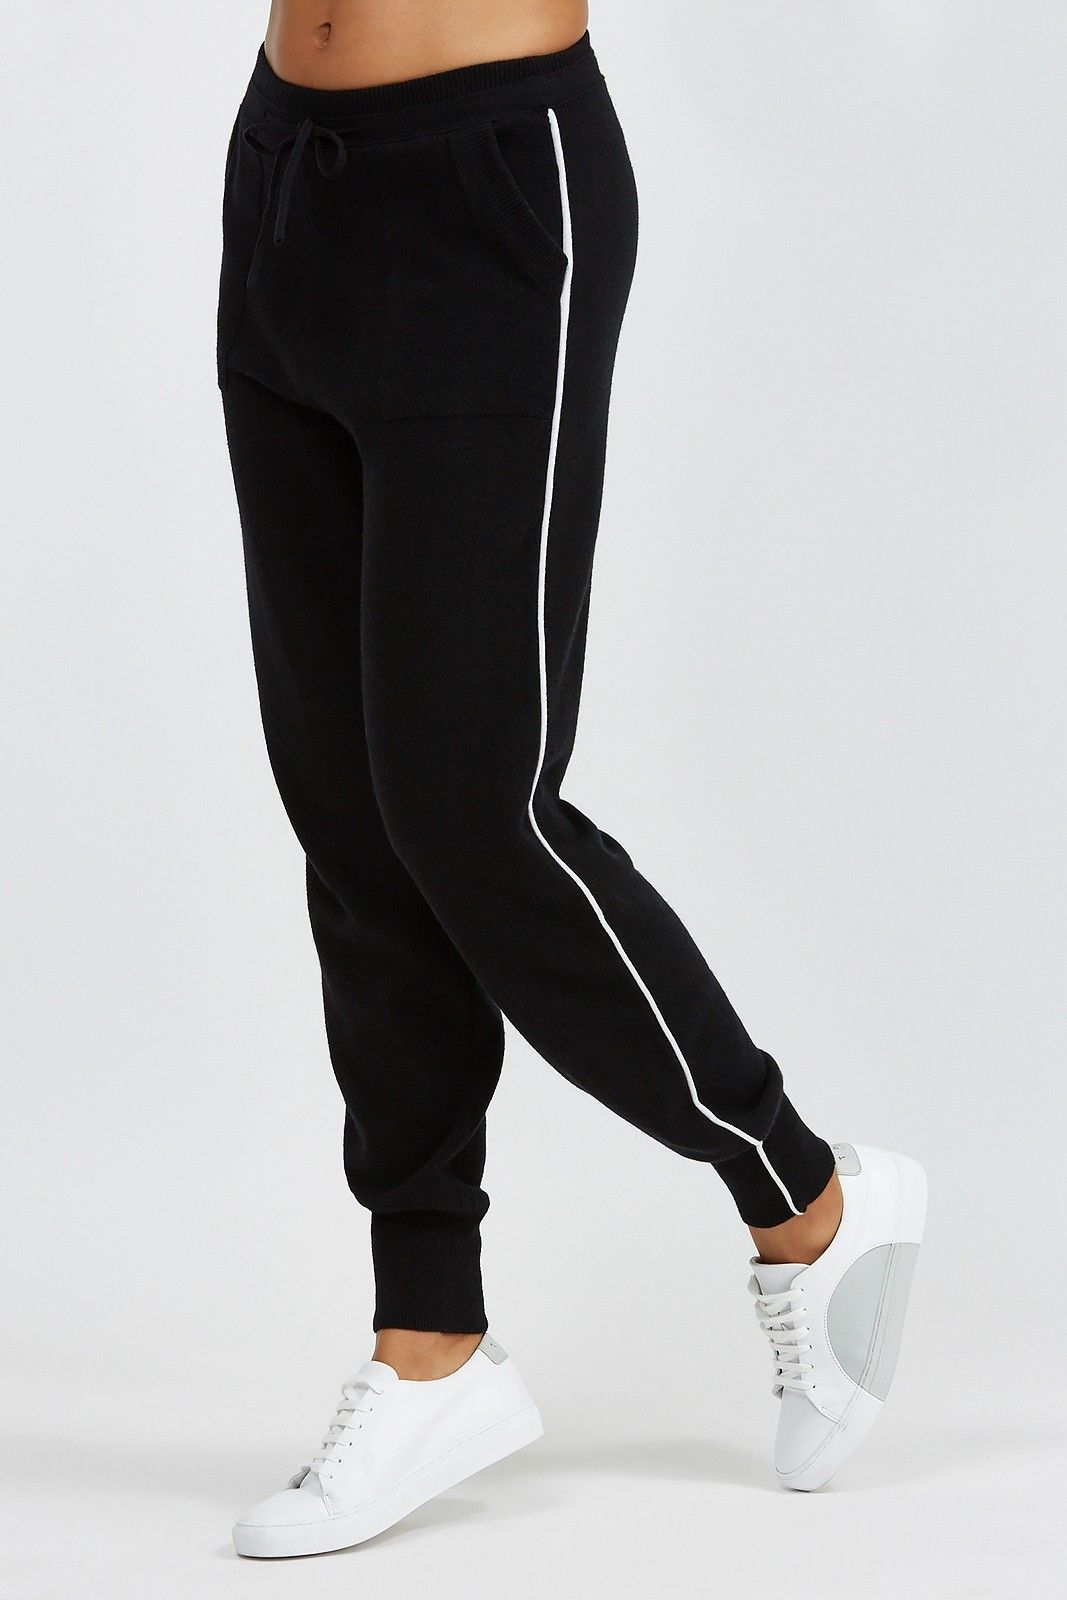 huge range of lowest price official price Cashmere jogger | Bandier Blacks | Joggers, Pants, Cashmere